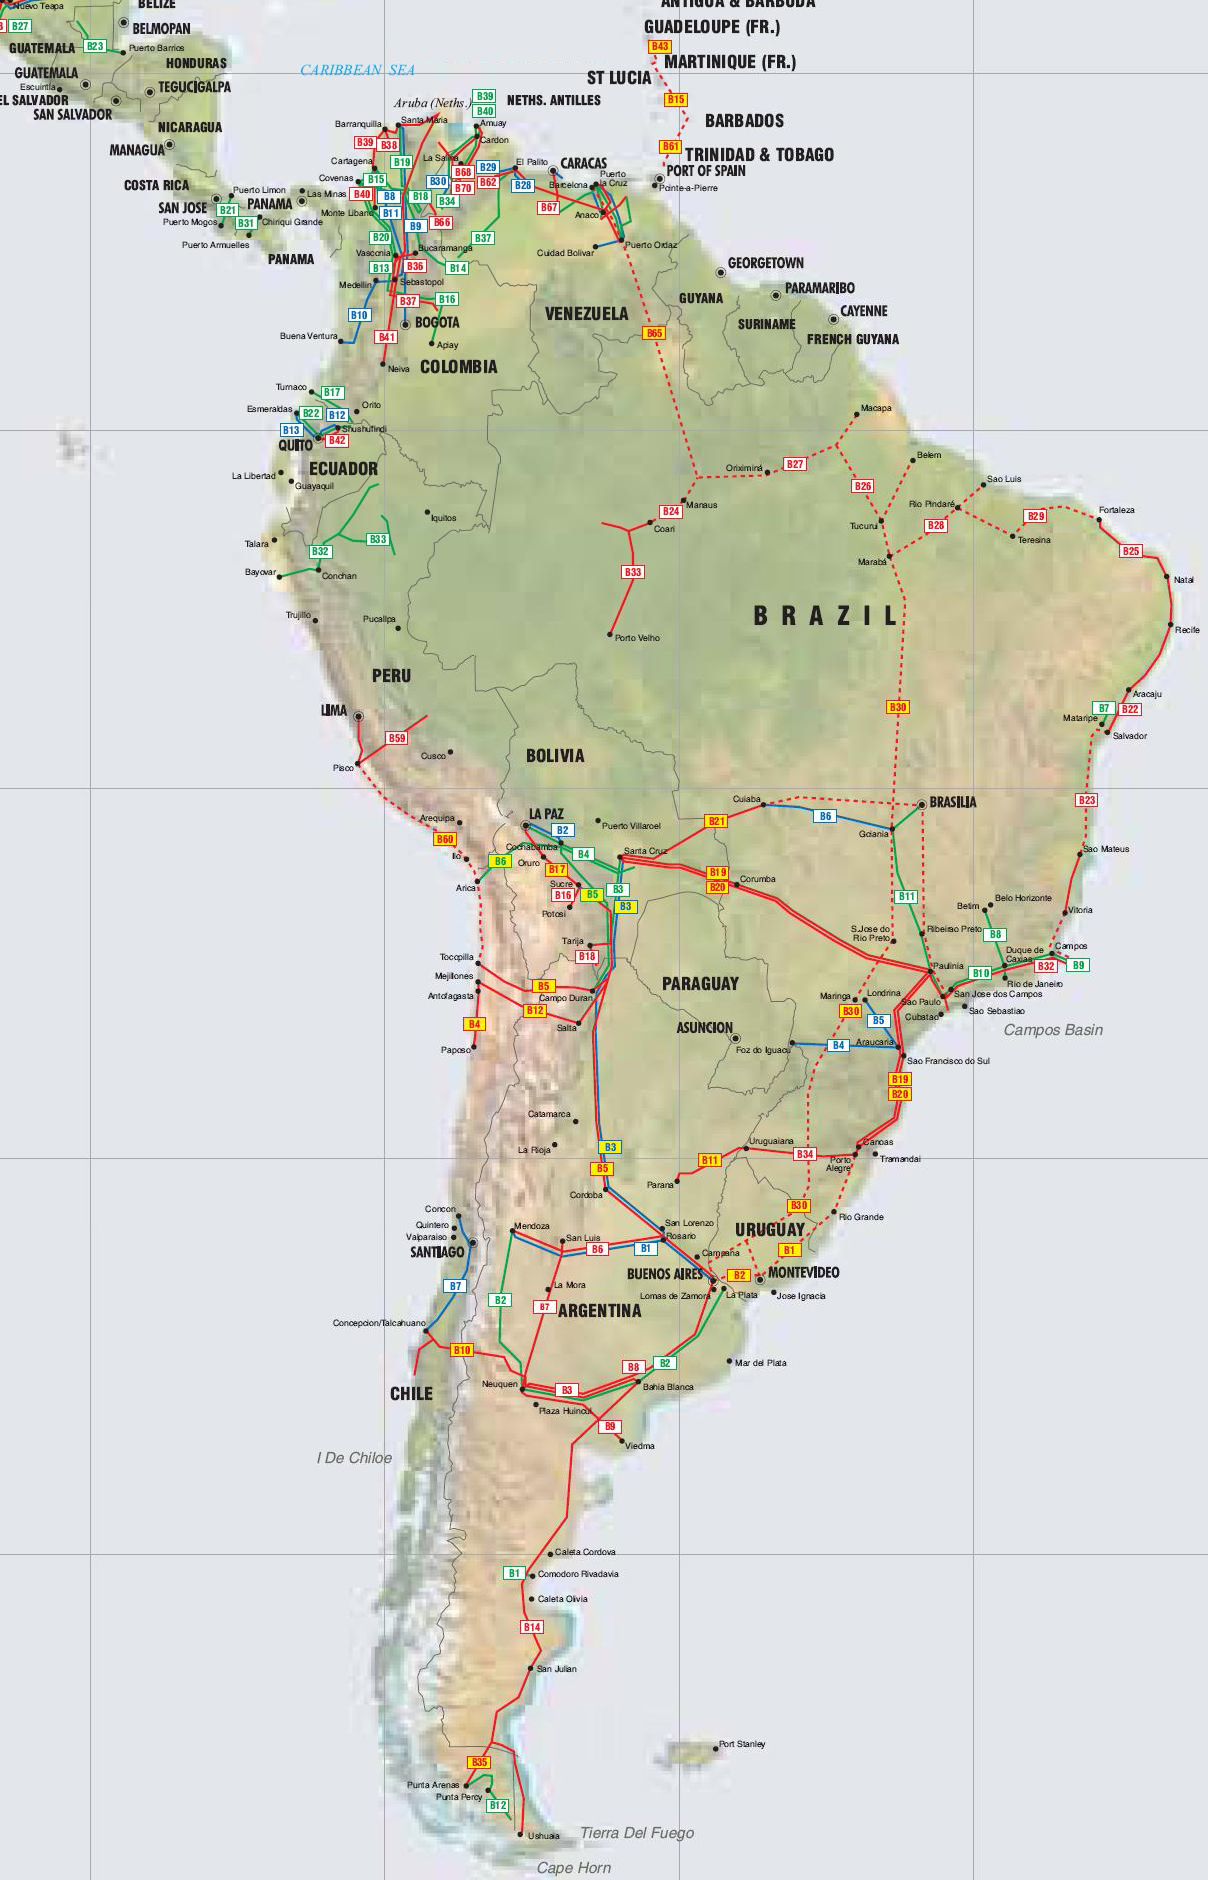 Central America, Caribbean and South America Pipelines map   Crude